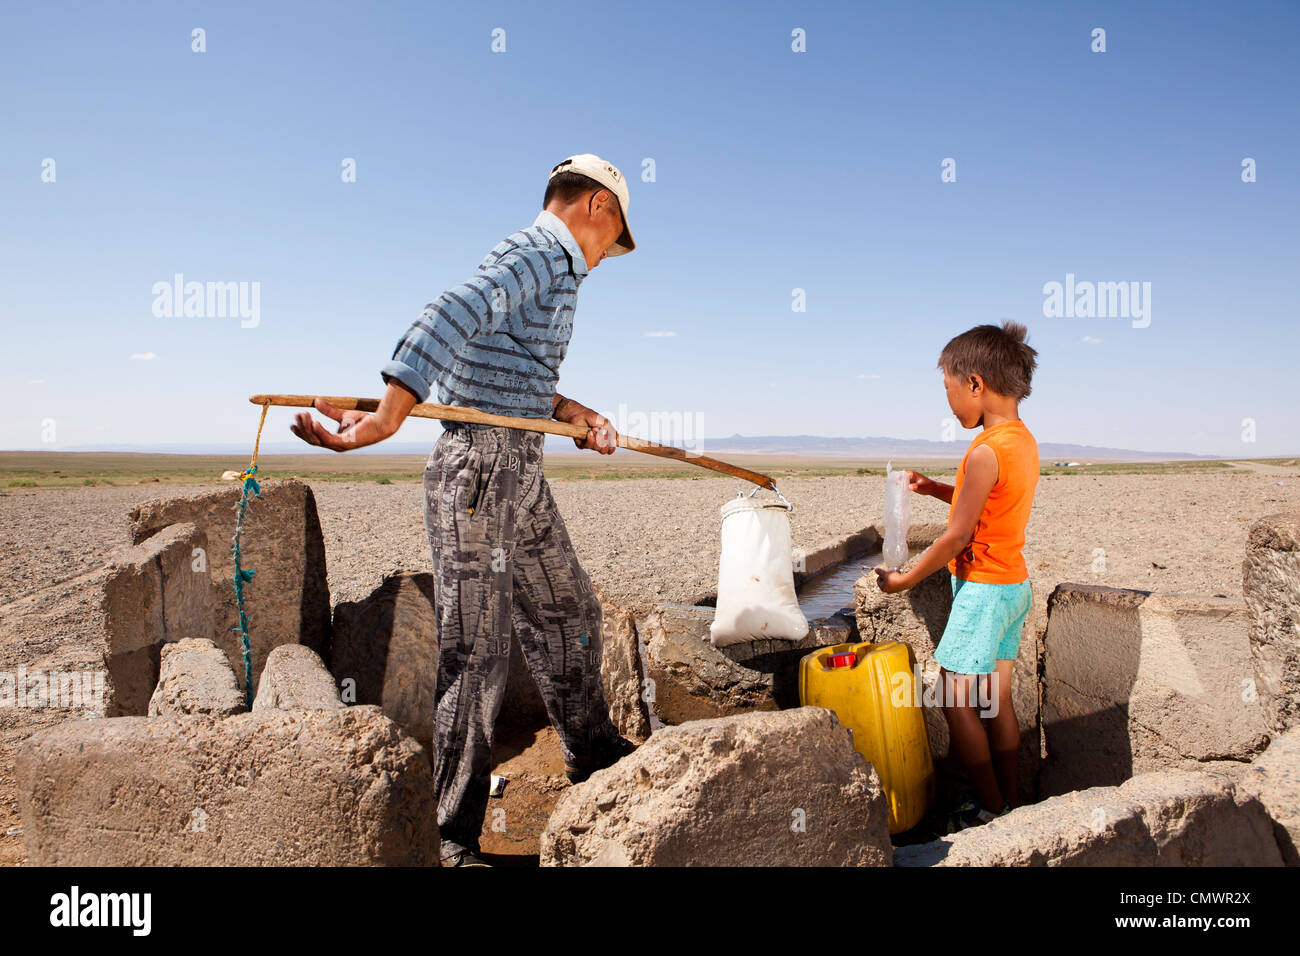 Father and son bail the well water in Gobi desert, Mongolia - Stock Image